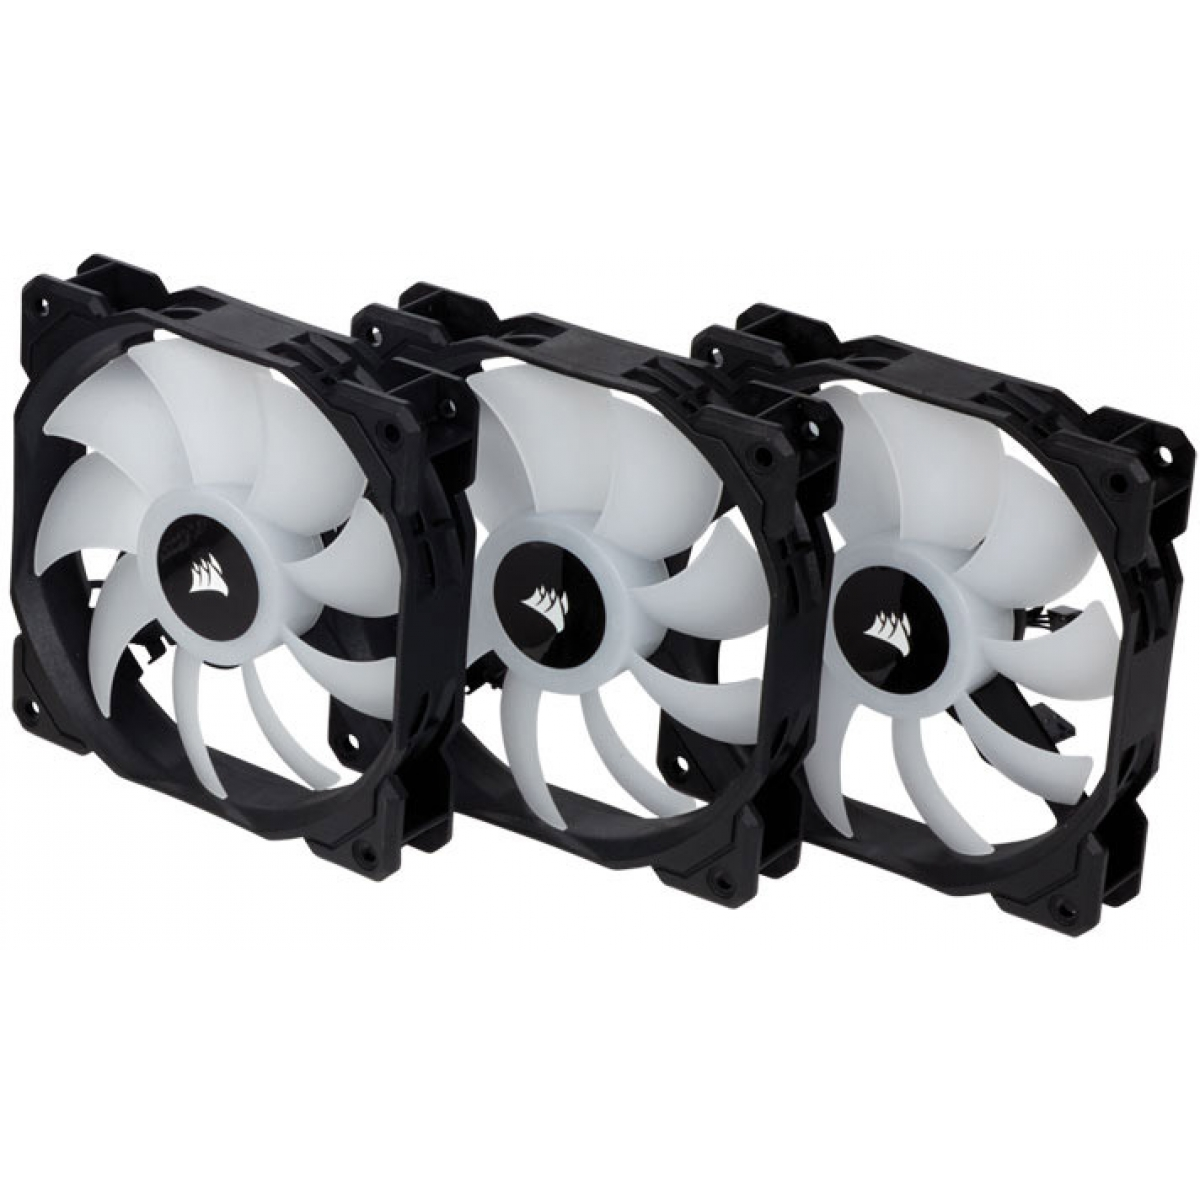 Kit fan com 3 Unidades Corsair SP120 RGB, 120mm, com Controlador, CO-9050061-WW